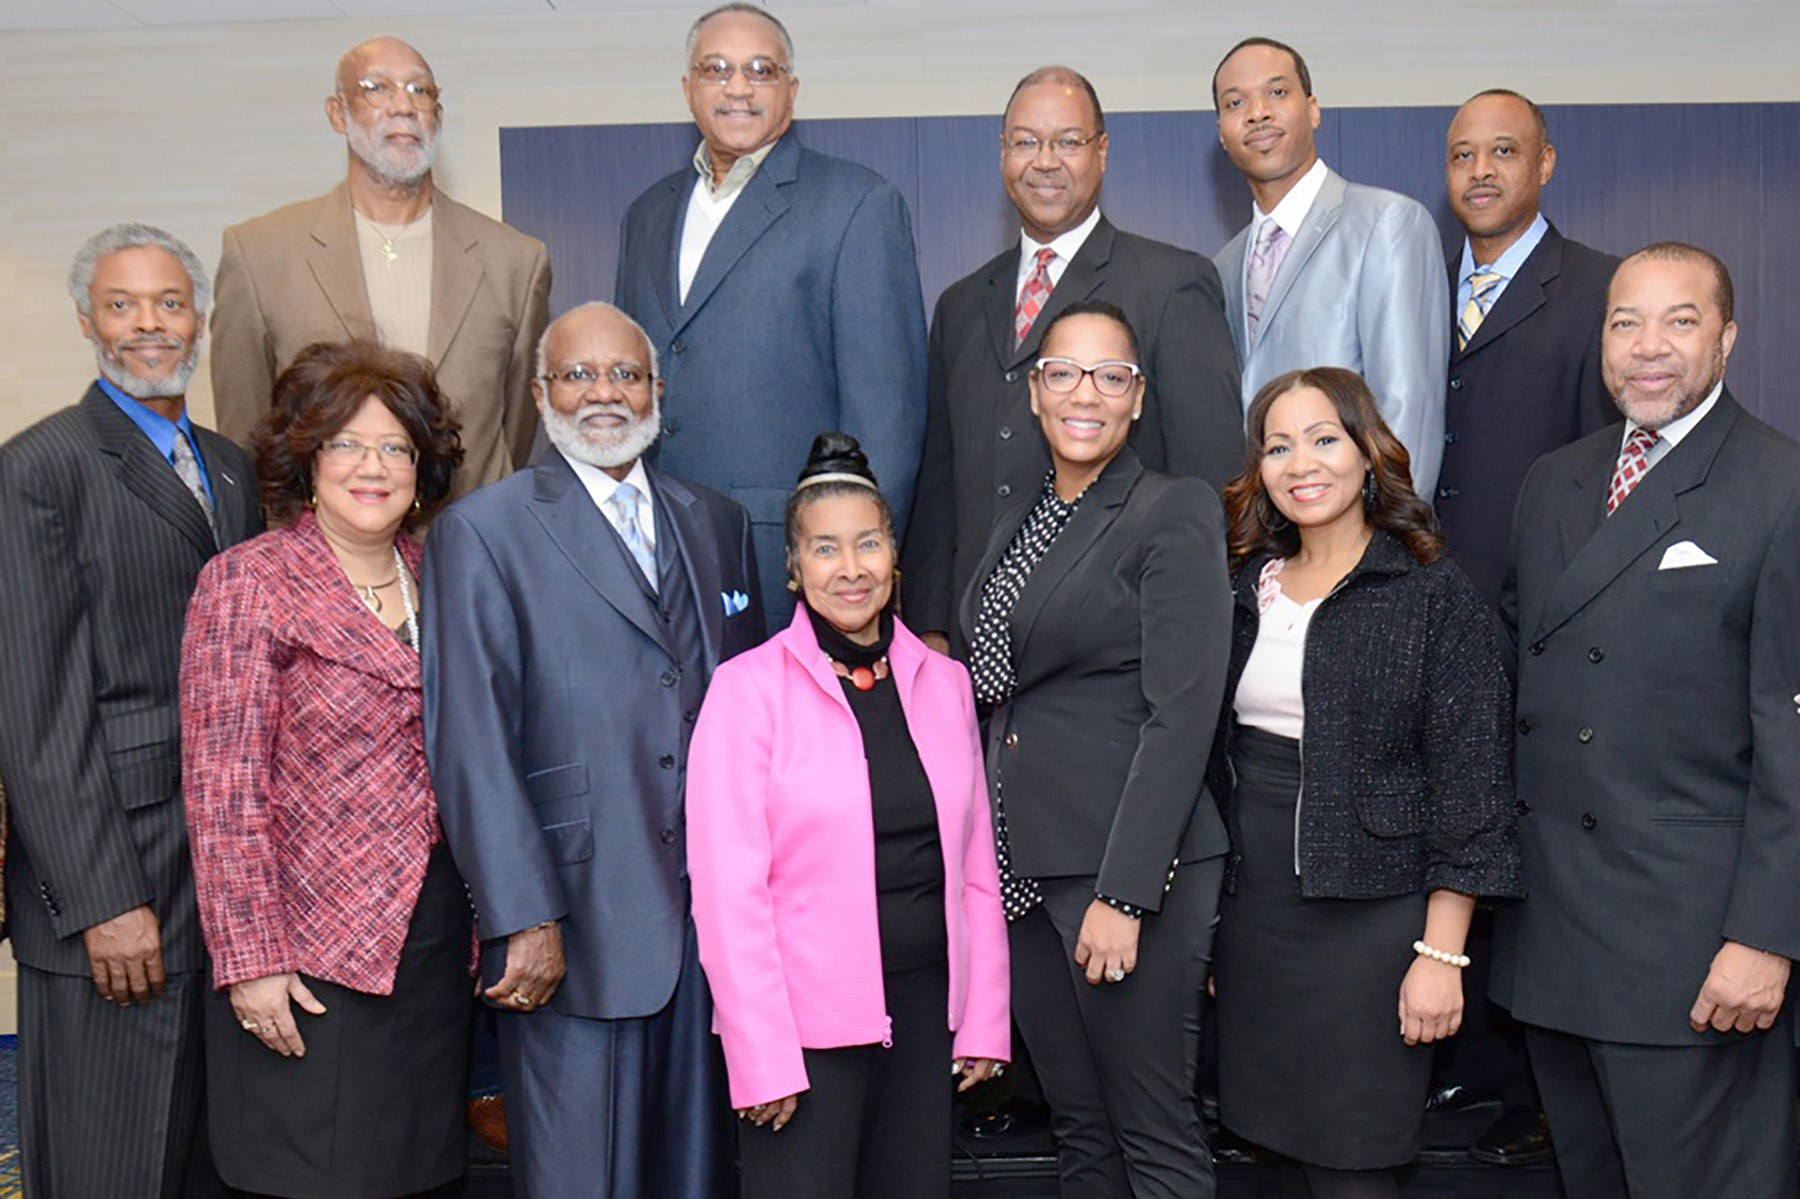 Front Row: (left to right), Rev. Nathaniel Bronner, Jr. (Trumpet Award Honoree); Avarita L. Hanson; (High Heels Honoree, Chief Justice's Commission on Professionalism), Bishop William Sheals (Spiritual Enlightenment Honoree); Xernona Clayton (Founder, Chairperson, President and CEO of the Trumpet Awards Foundation, Inc. and Creator and Executive Producer of the Trumpet Awards); Kysha Cameron (High Heels Honoree, Ryan Cameron Foundation), Sheila Tenney (High Heels Honoree, Atlanta Metropolitan State College); Thomas W. Dortch, Jr. (Treasurer, Trumpet Awards Foundation). Back Row:Dr. John Carlos (Walk of Fame Honoree, Olympian, Educator and Activist); Dr. Tommy Smith, (Walk of Fame Honoree, Olympian, Educator and Activist); Rev. Frank Brown, President Concerned Black Clergy (Spiritual Enlightenment Honoree); Rev James Bronner (Trumpet Award Honoree); Rev. C. Elijah Bronner (Trumpet Award Honoree).